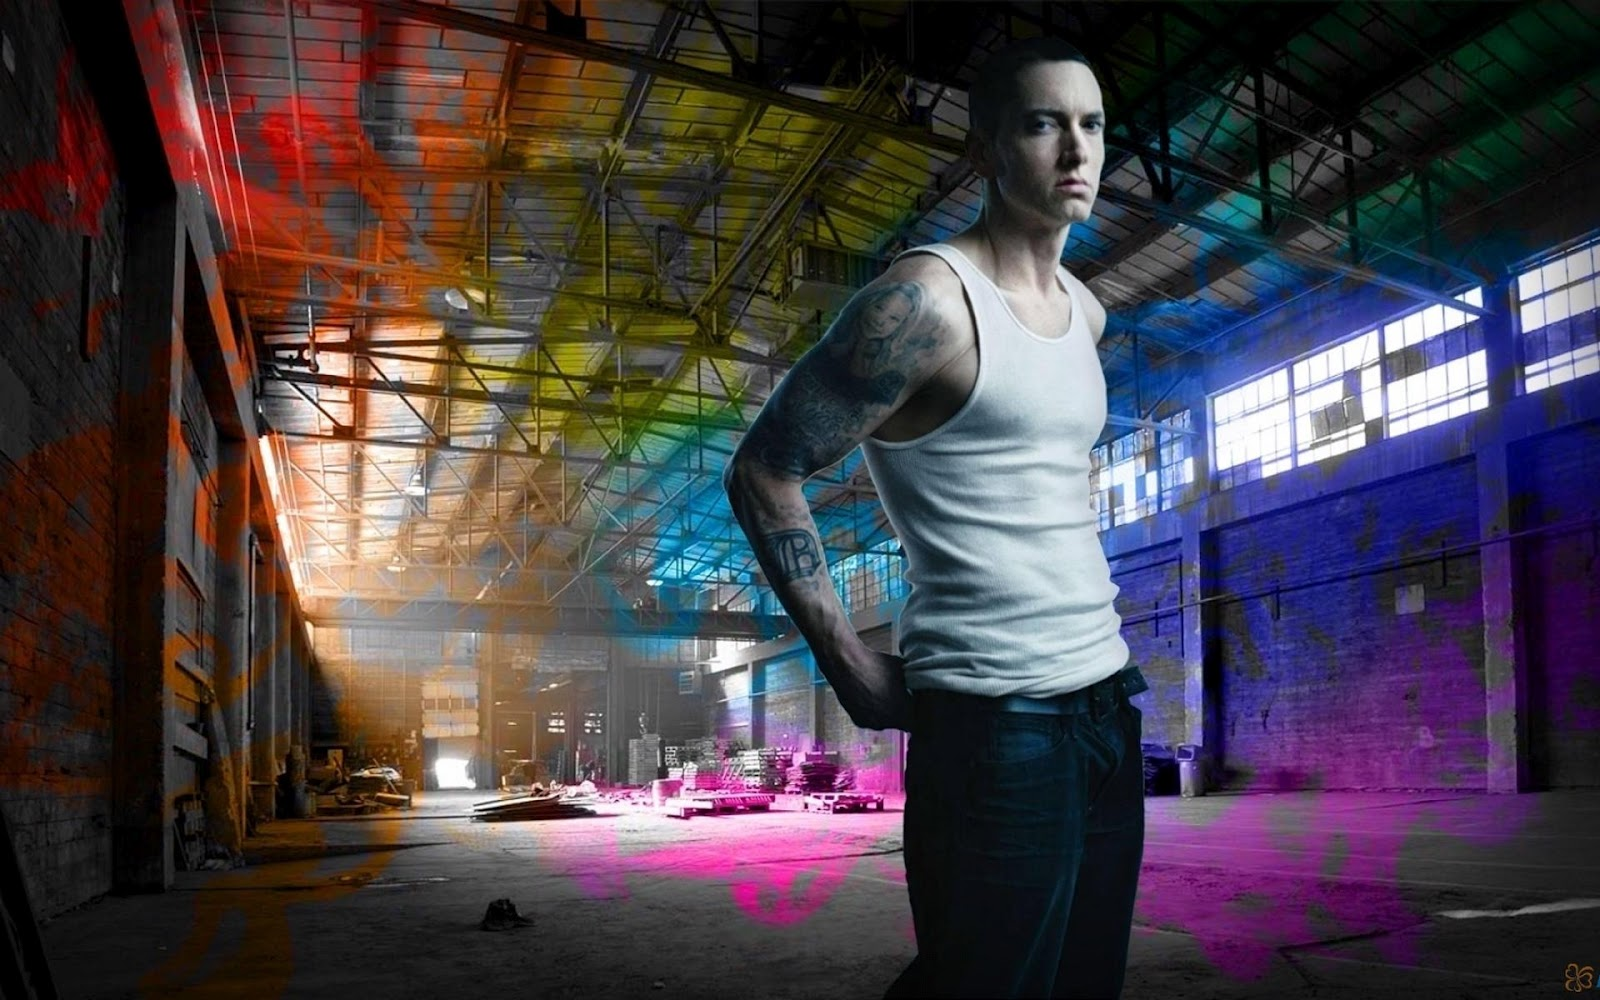 Hot Babes Single Eminem Desktop Hd Wallpapers 2012-2013-4357